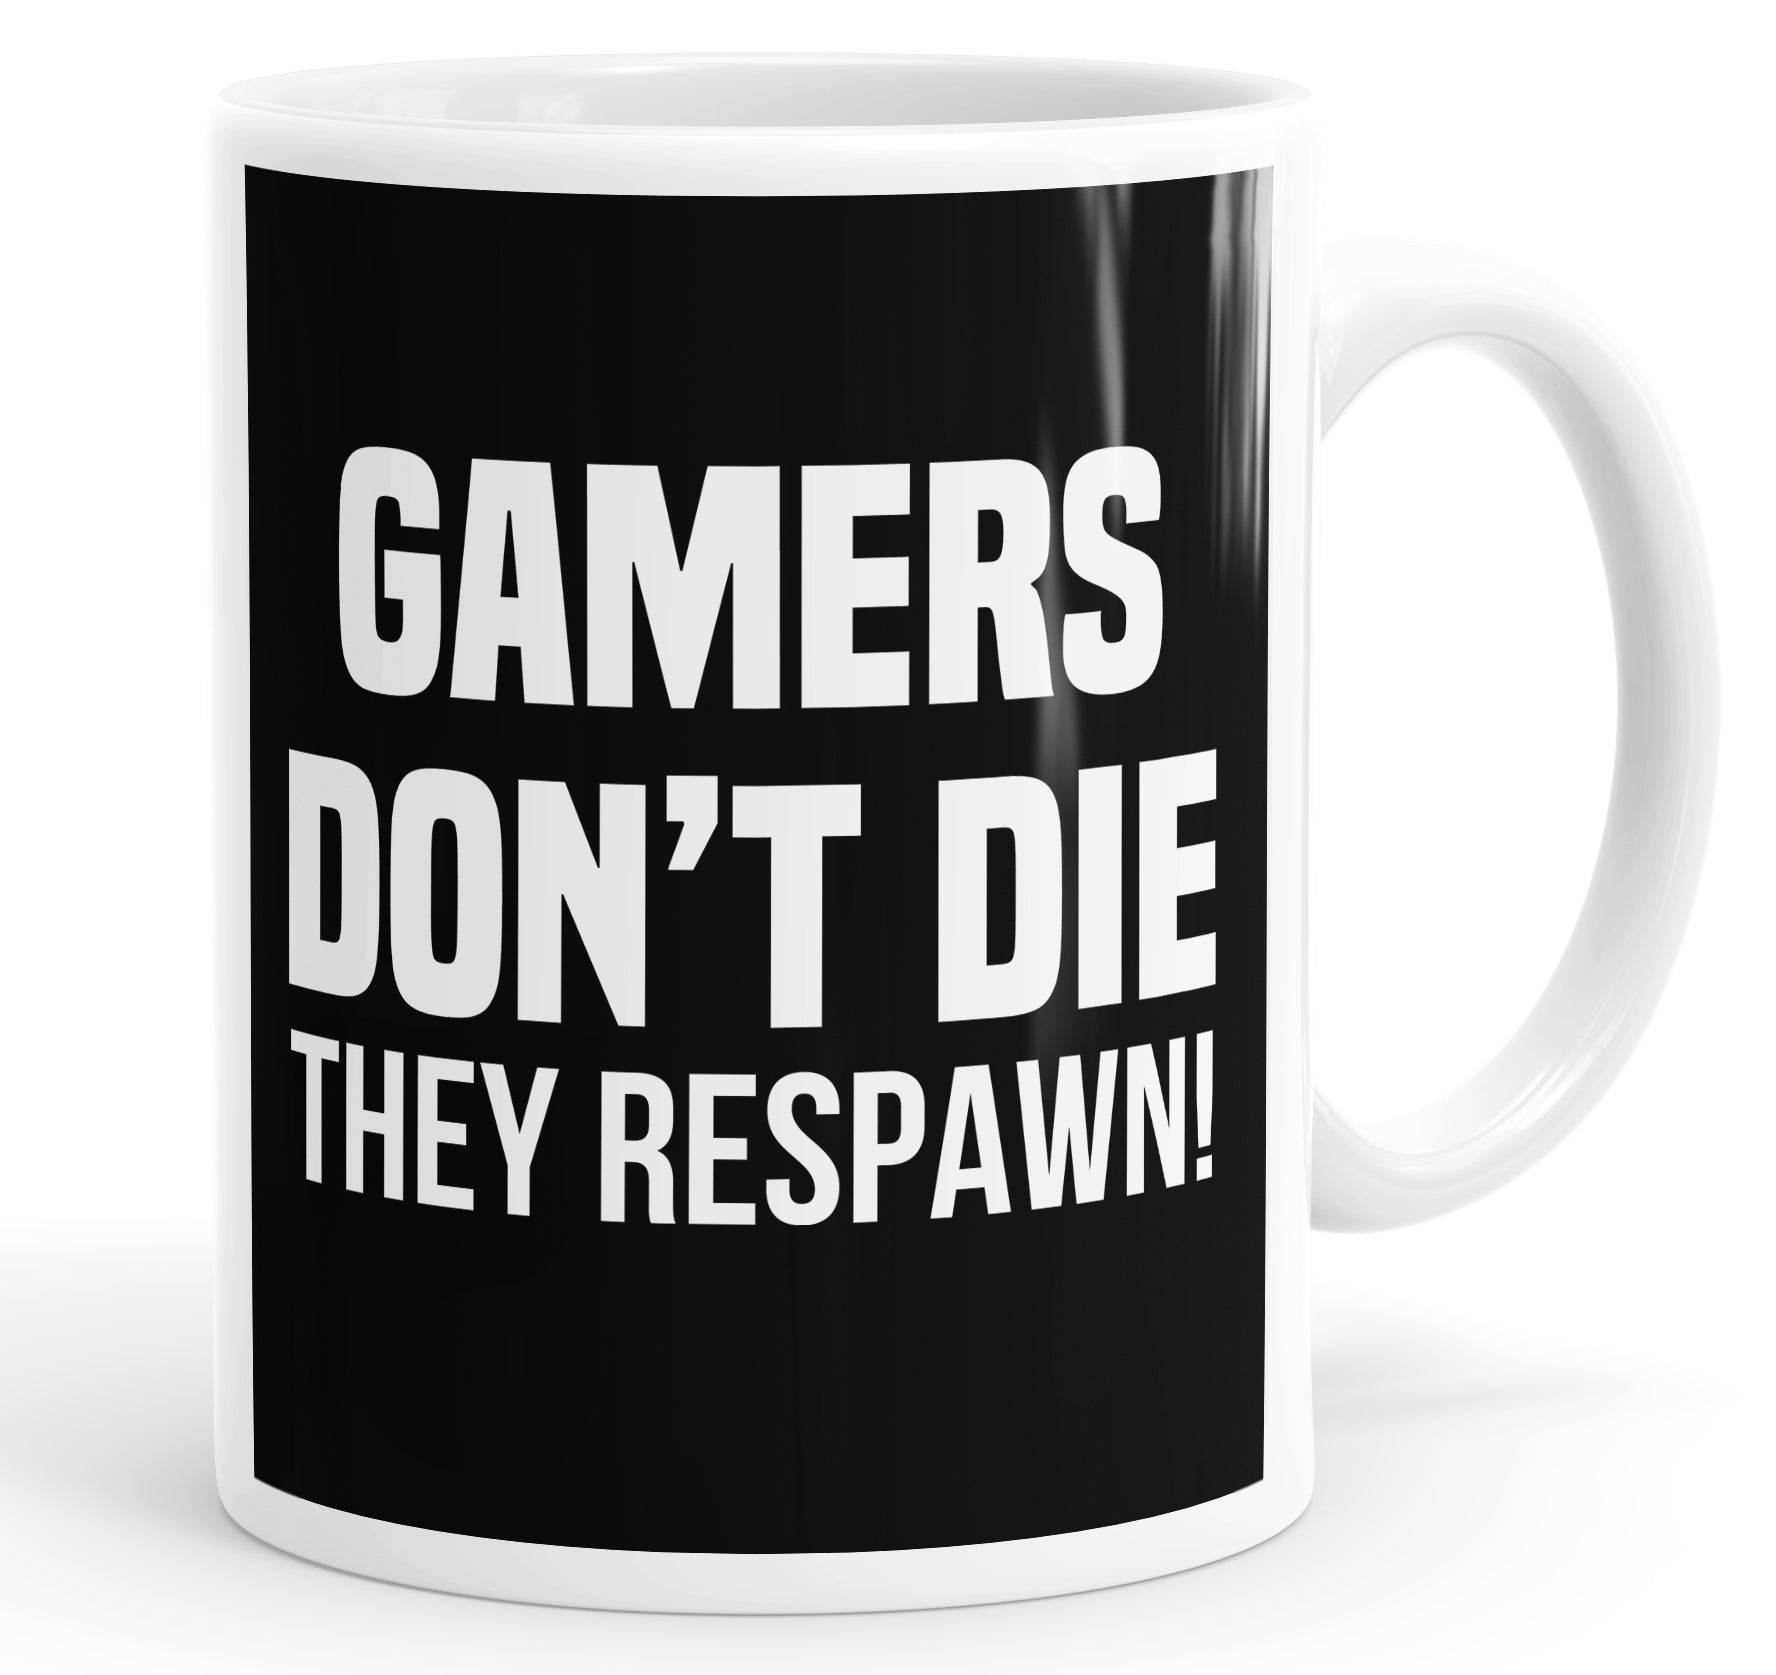 Gamers Don't Die They Respawn Mug Cup